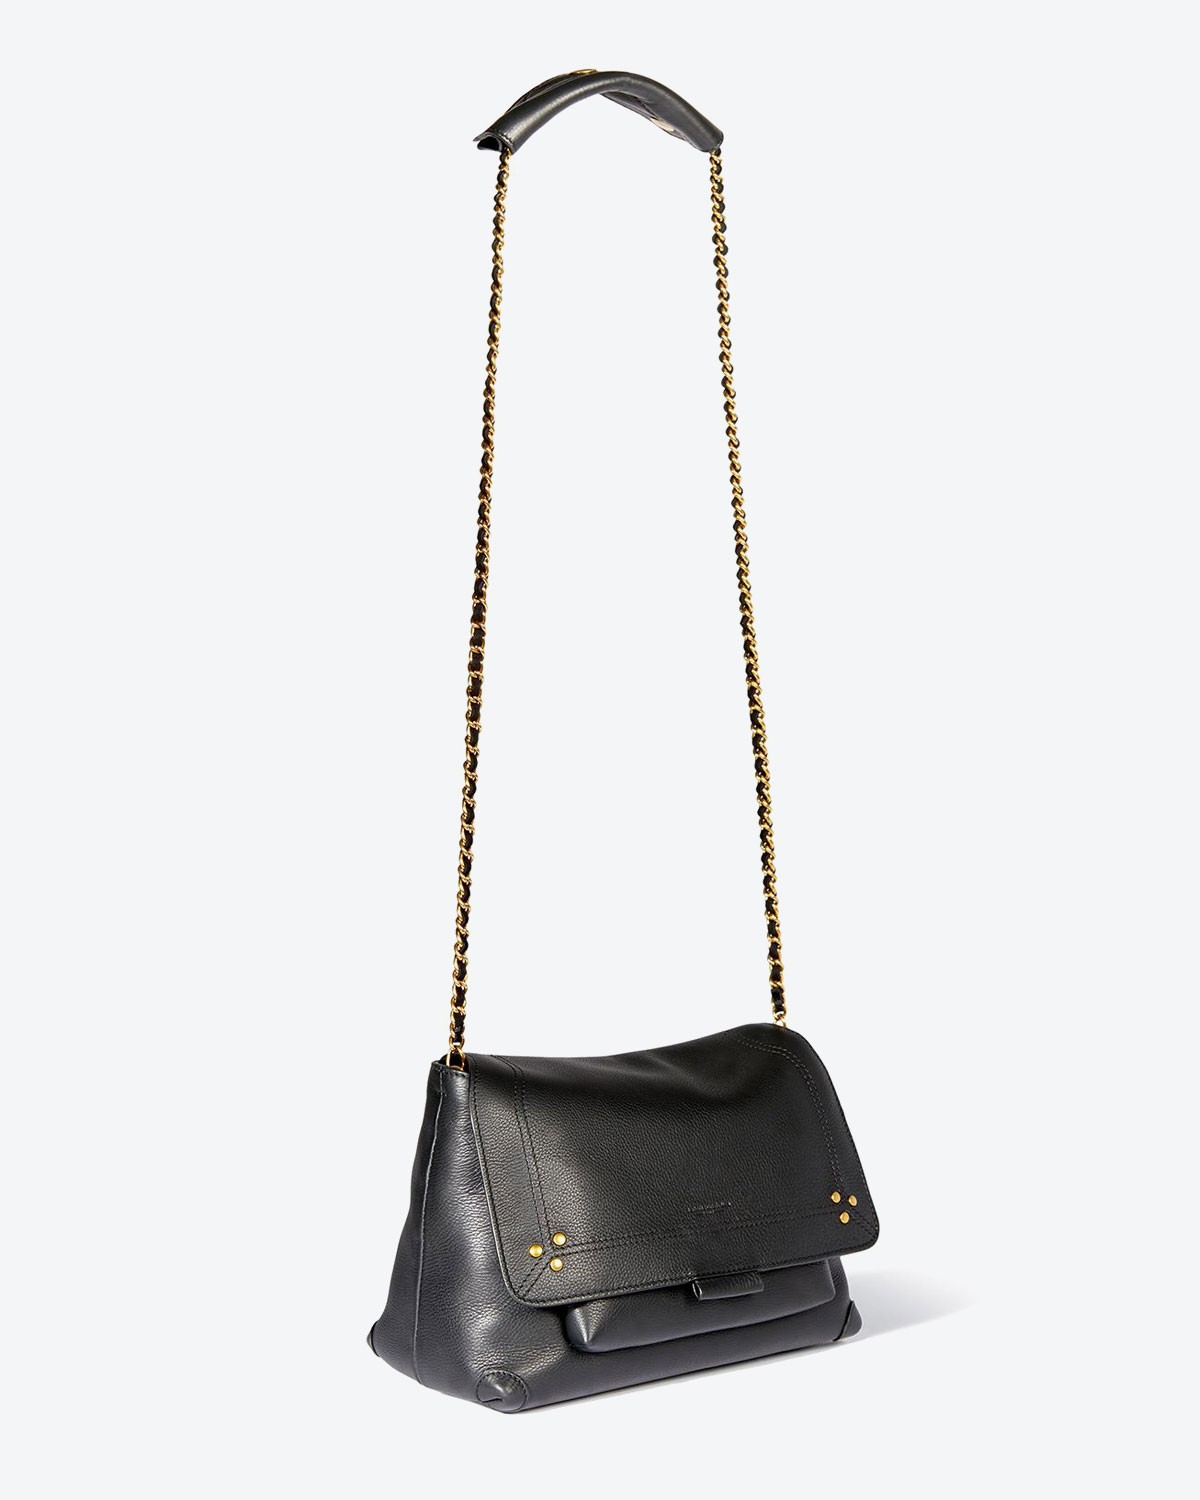 Jérôme Dreyfuss Pré-Collection Lulu M Calfskin Noir Brass